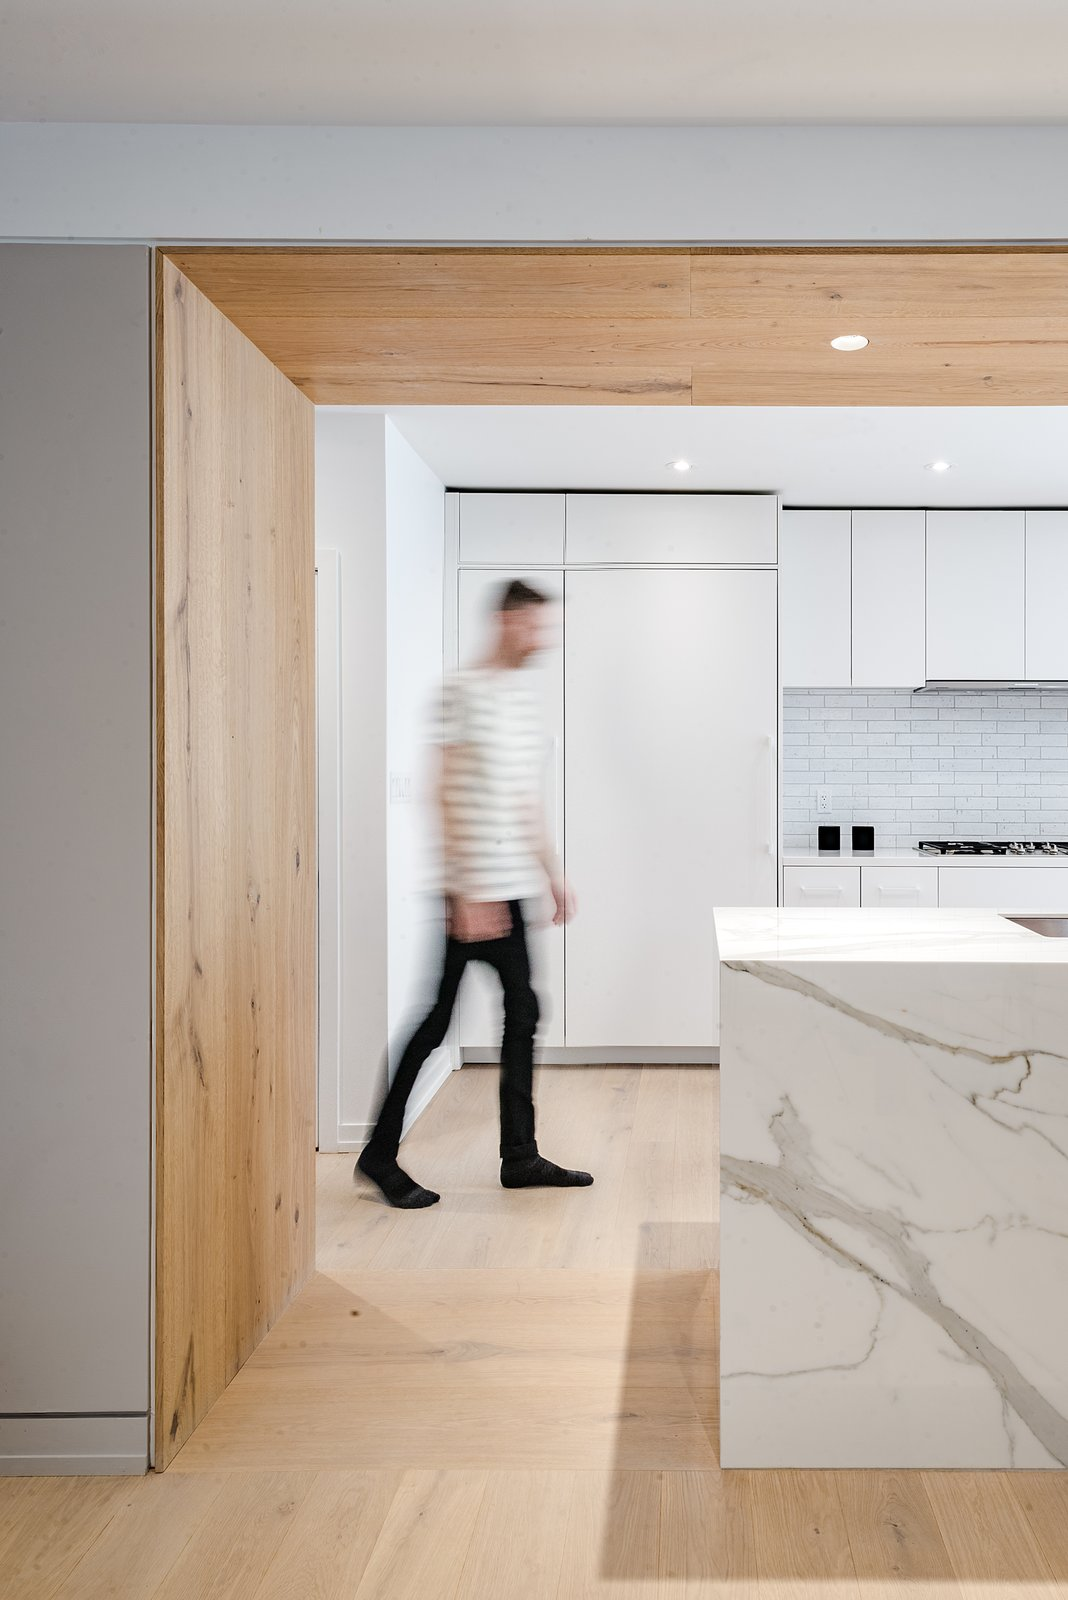 Tagged: Kitchen, Quartzite Counter, White Cabinet, Subway Tile Backsplashe, Ceiling Lighting, Recessed Lighting, Light Hardwood Floor, Refrigerator, and Undermount Sink.  Richview Residence by StudioAC